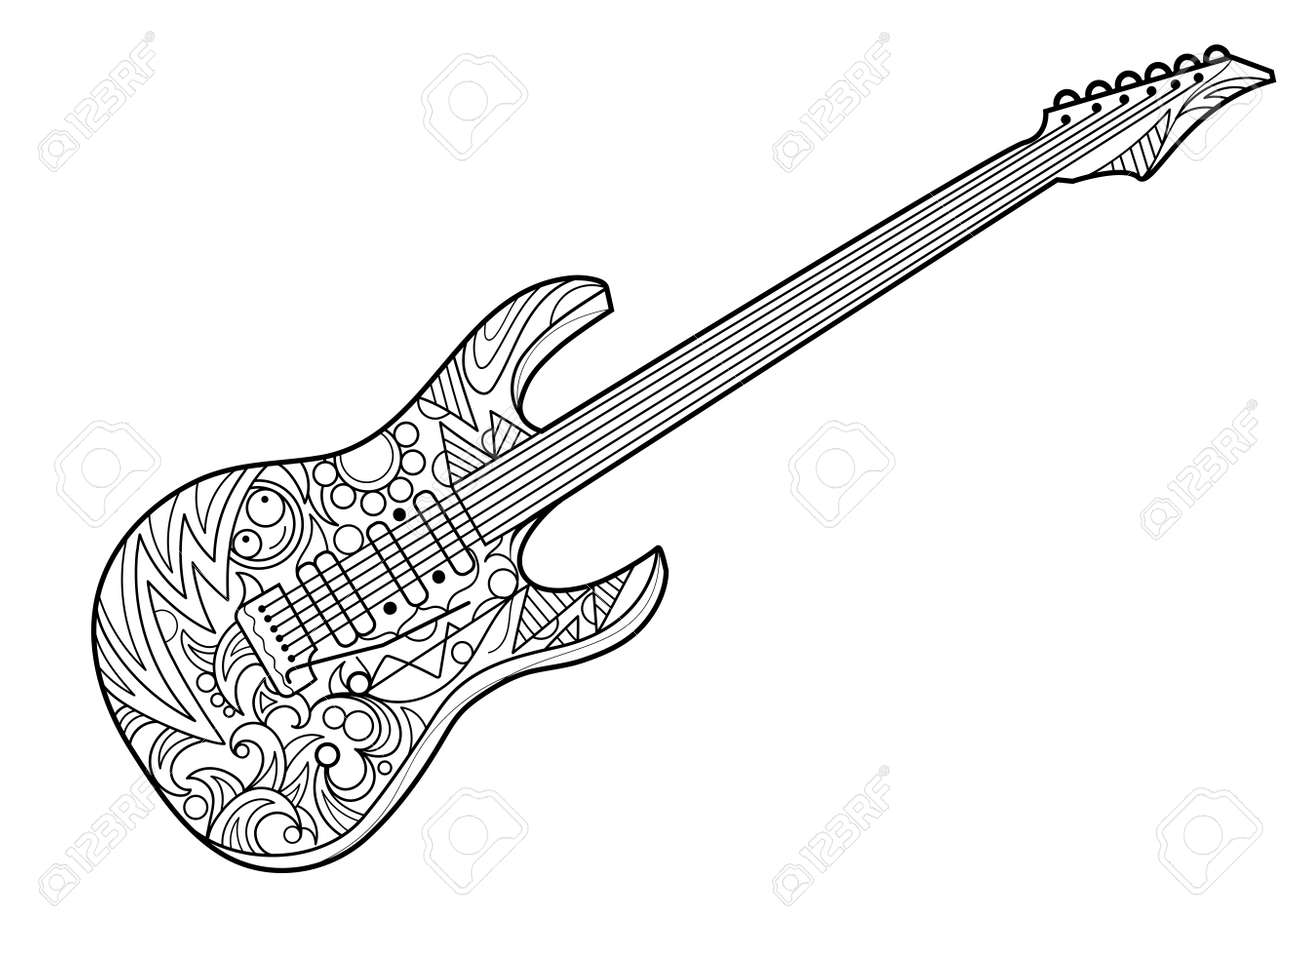 Electric Guitar Coloring Book For Adults Illustration. Violin ...